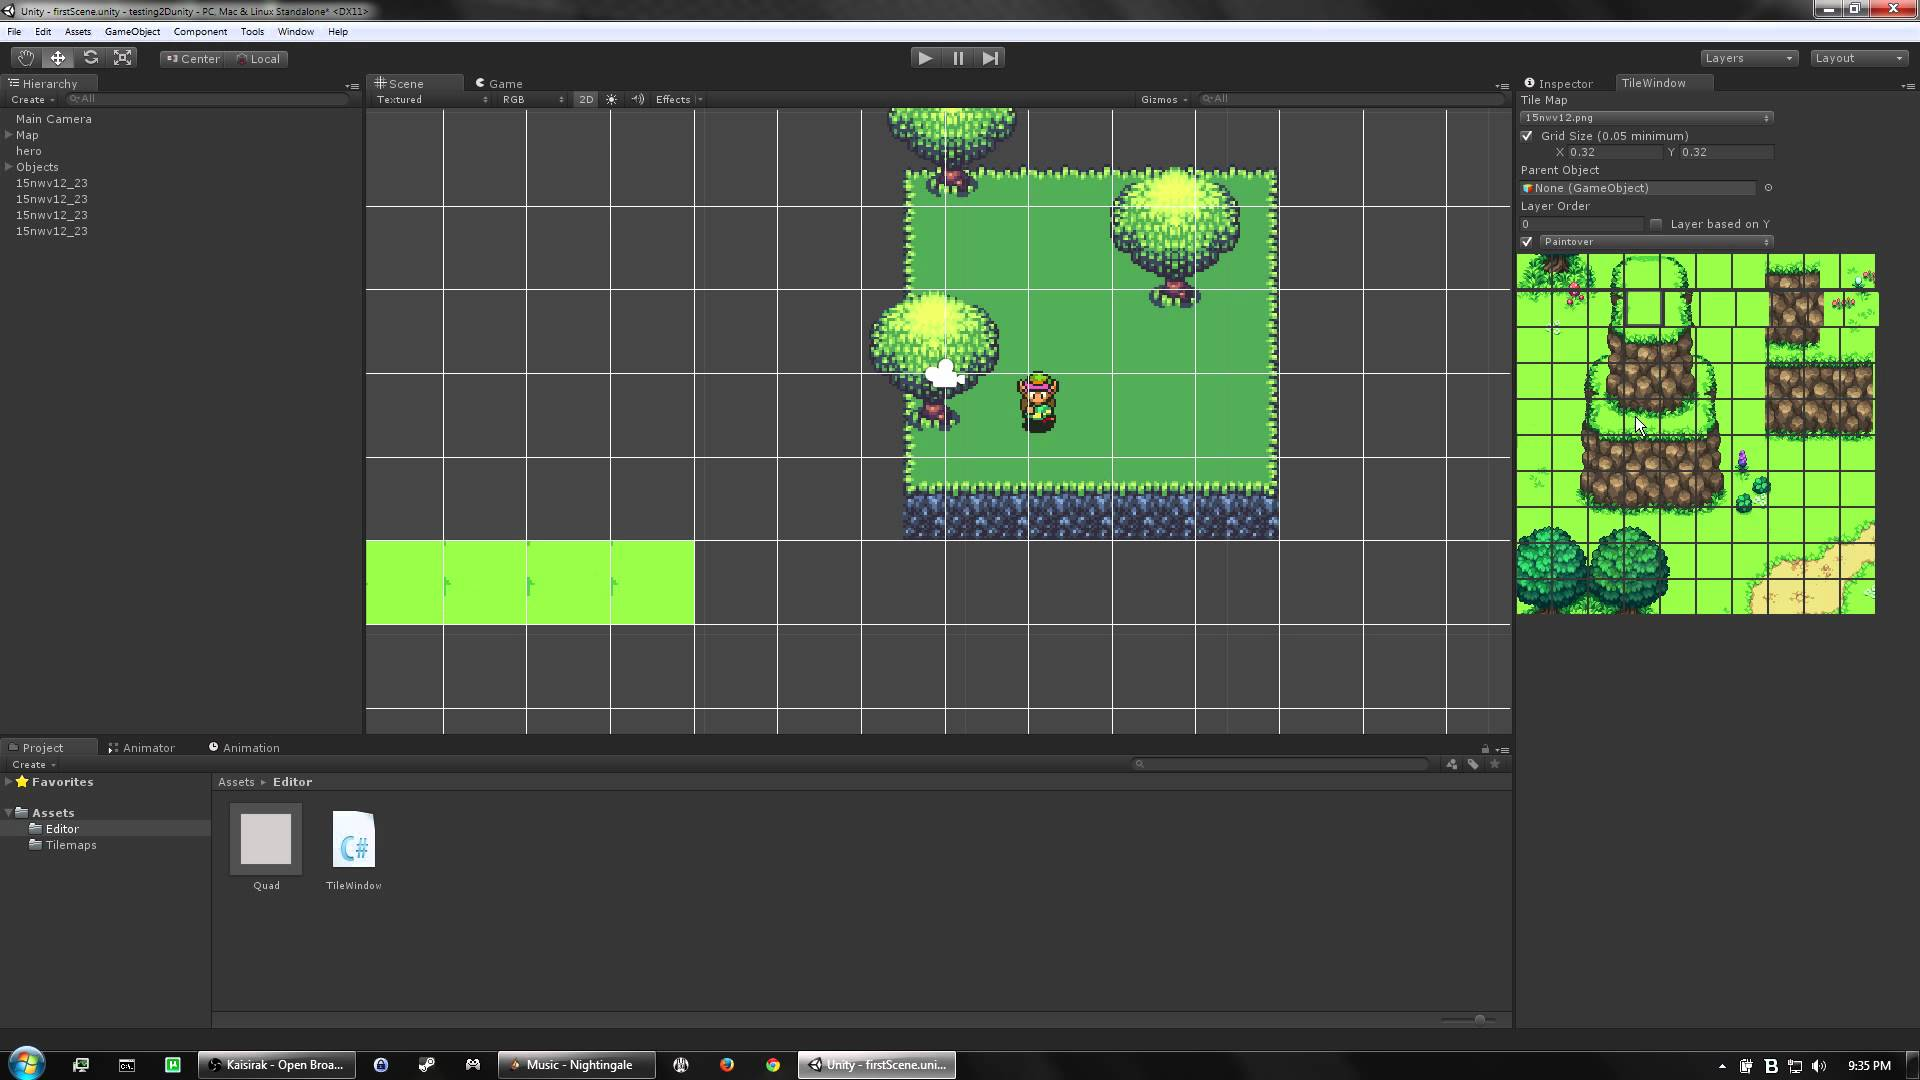 Unity3d Tile Map Editor Download - apalonmint